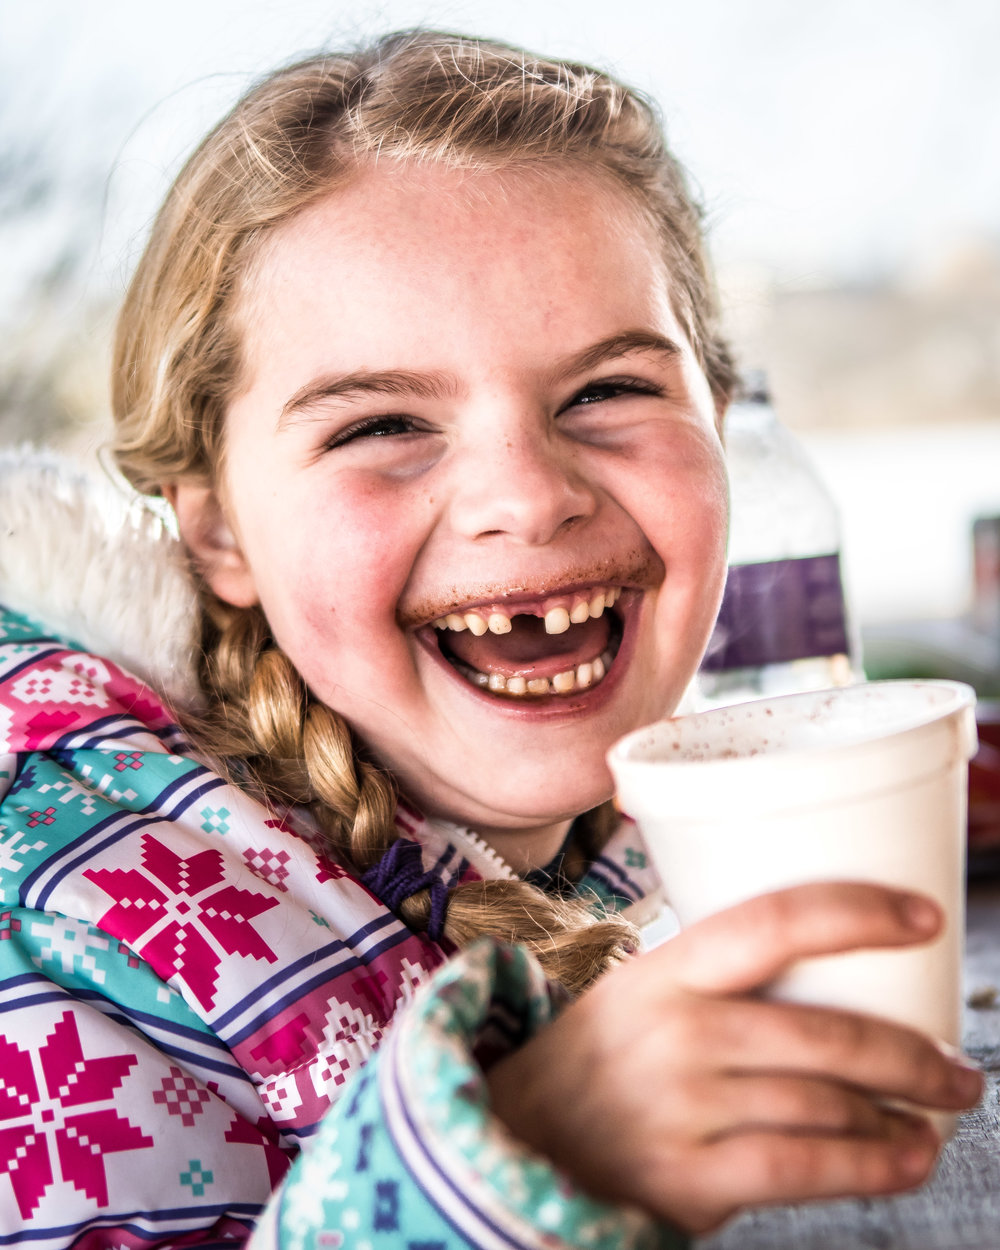 All smiles - Elizabeth Kordus, 6, shows her missing front tooth with a hot chocolate mustache while enjoying her hot chocolate during Burlington's Hot Chocolatefest Saturday afternoon.